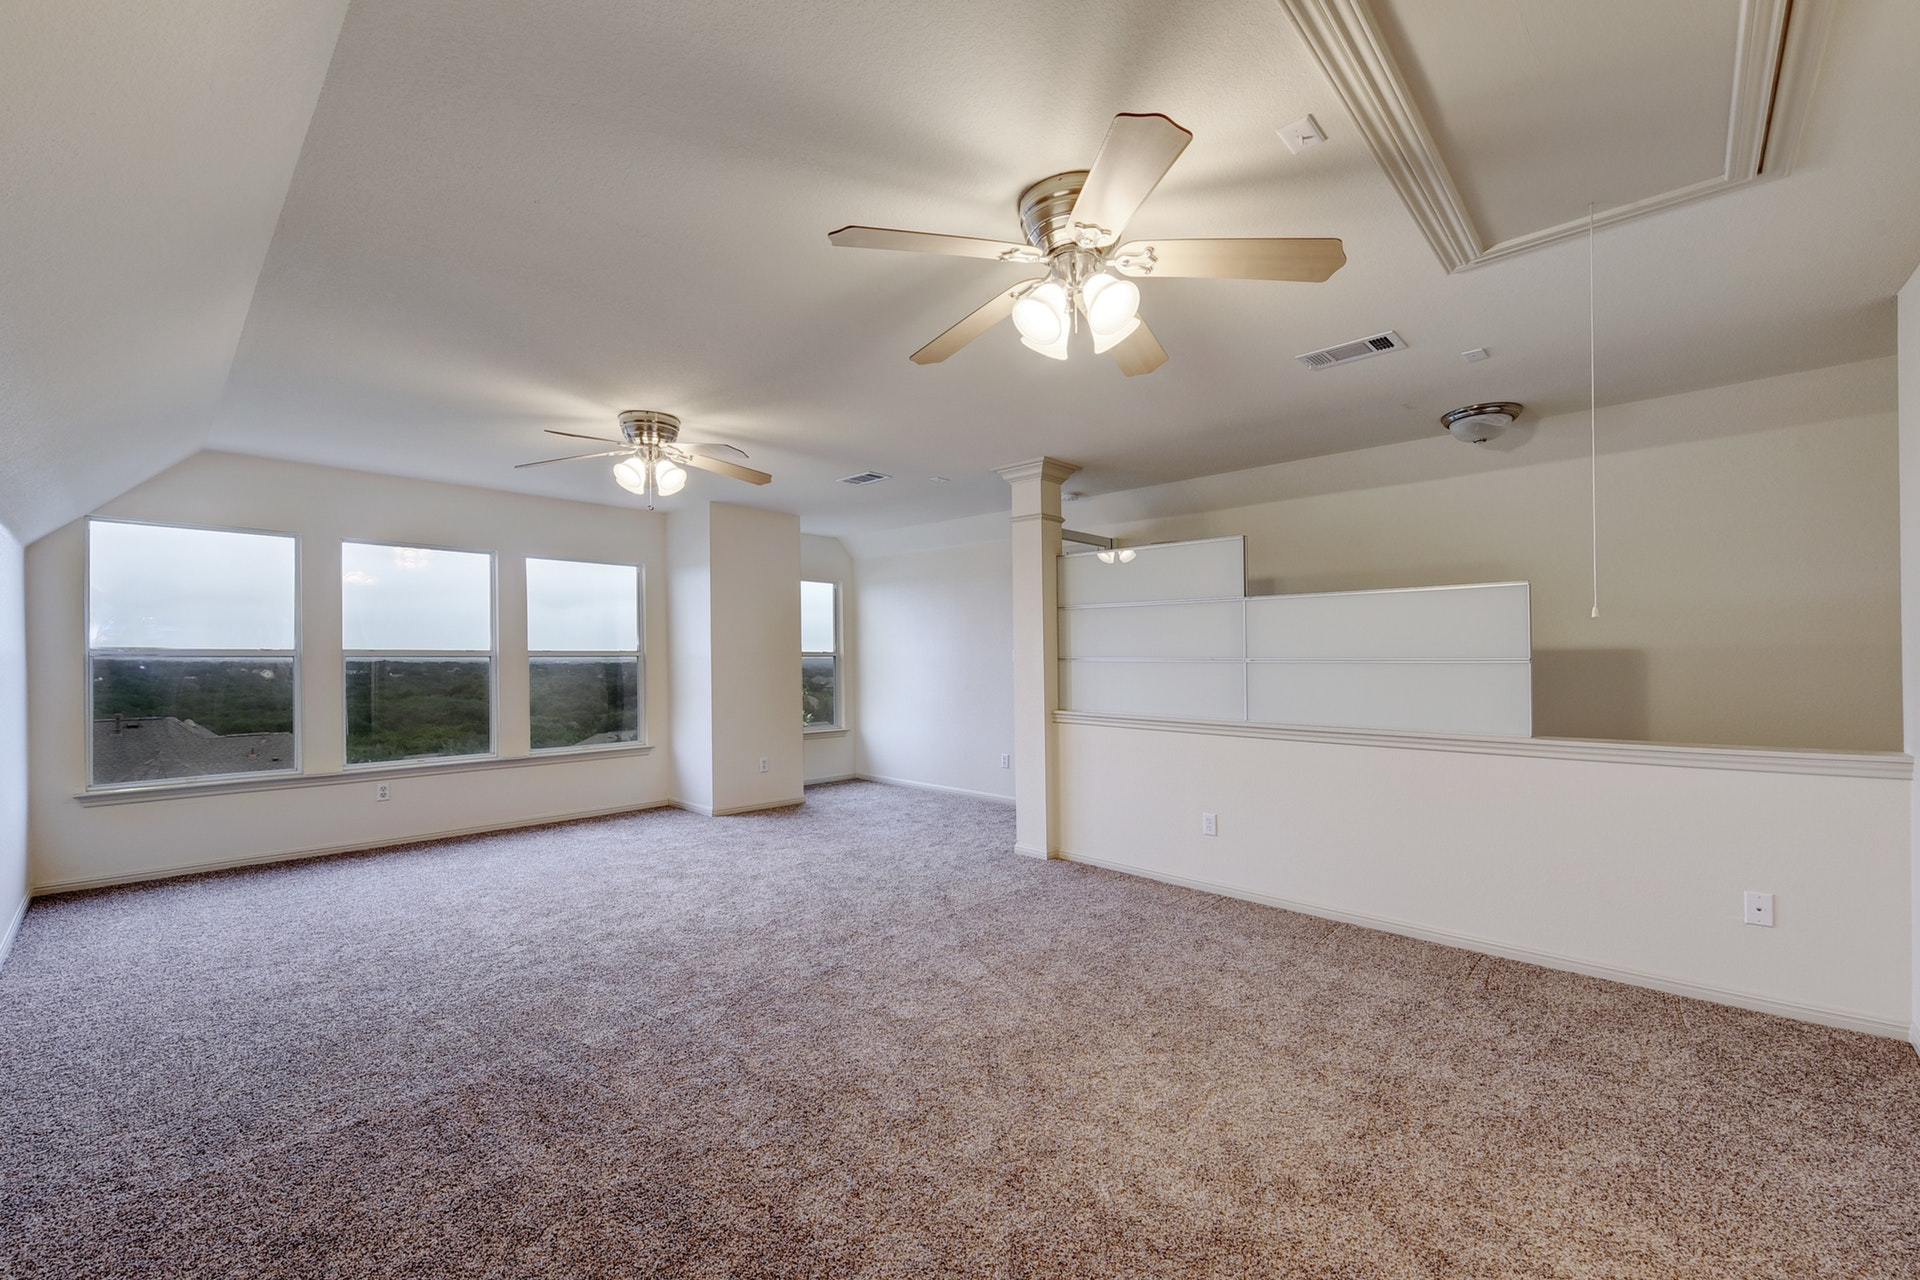 7100 Via Dono - 3rd Floor Bonus Room